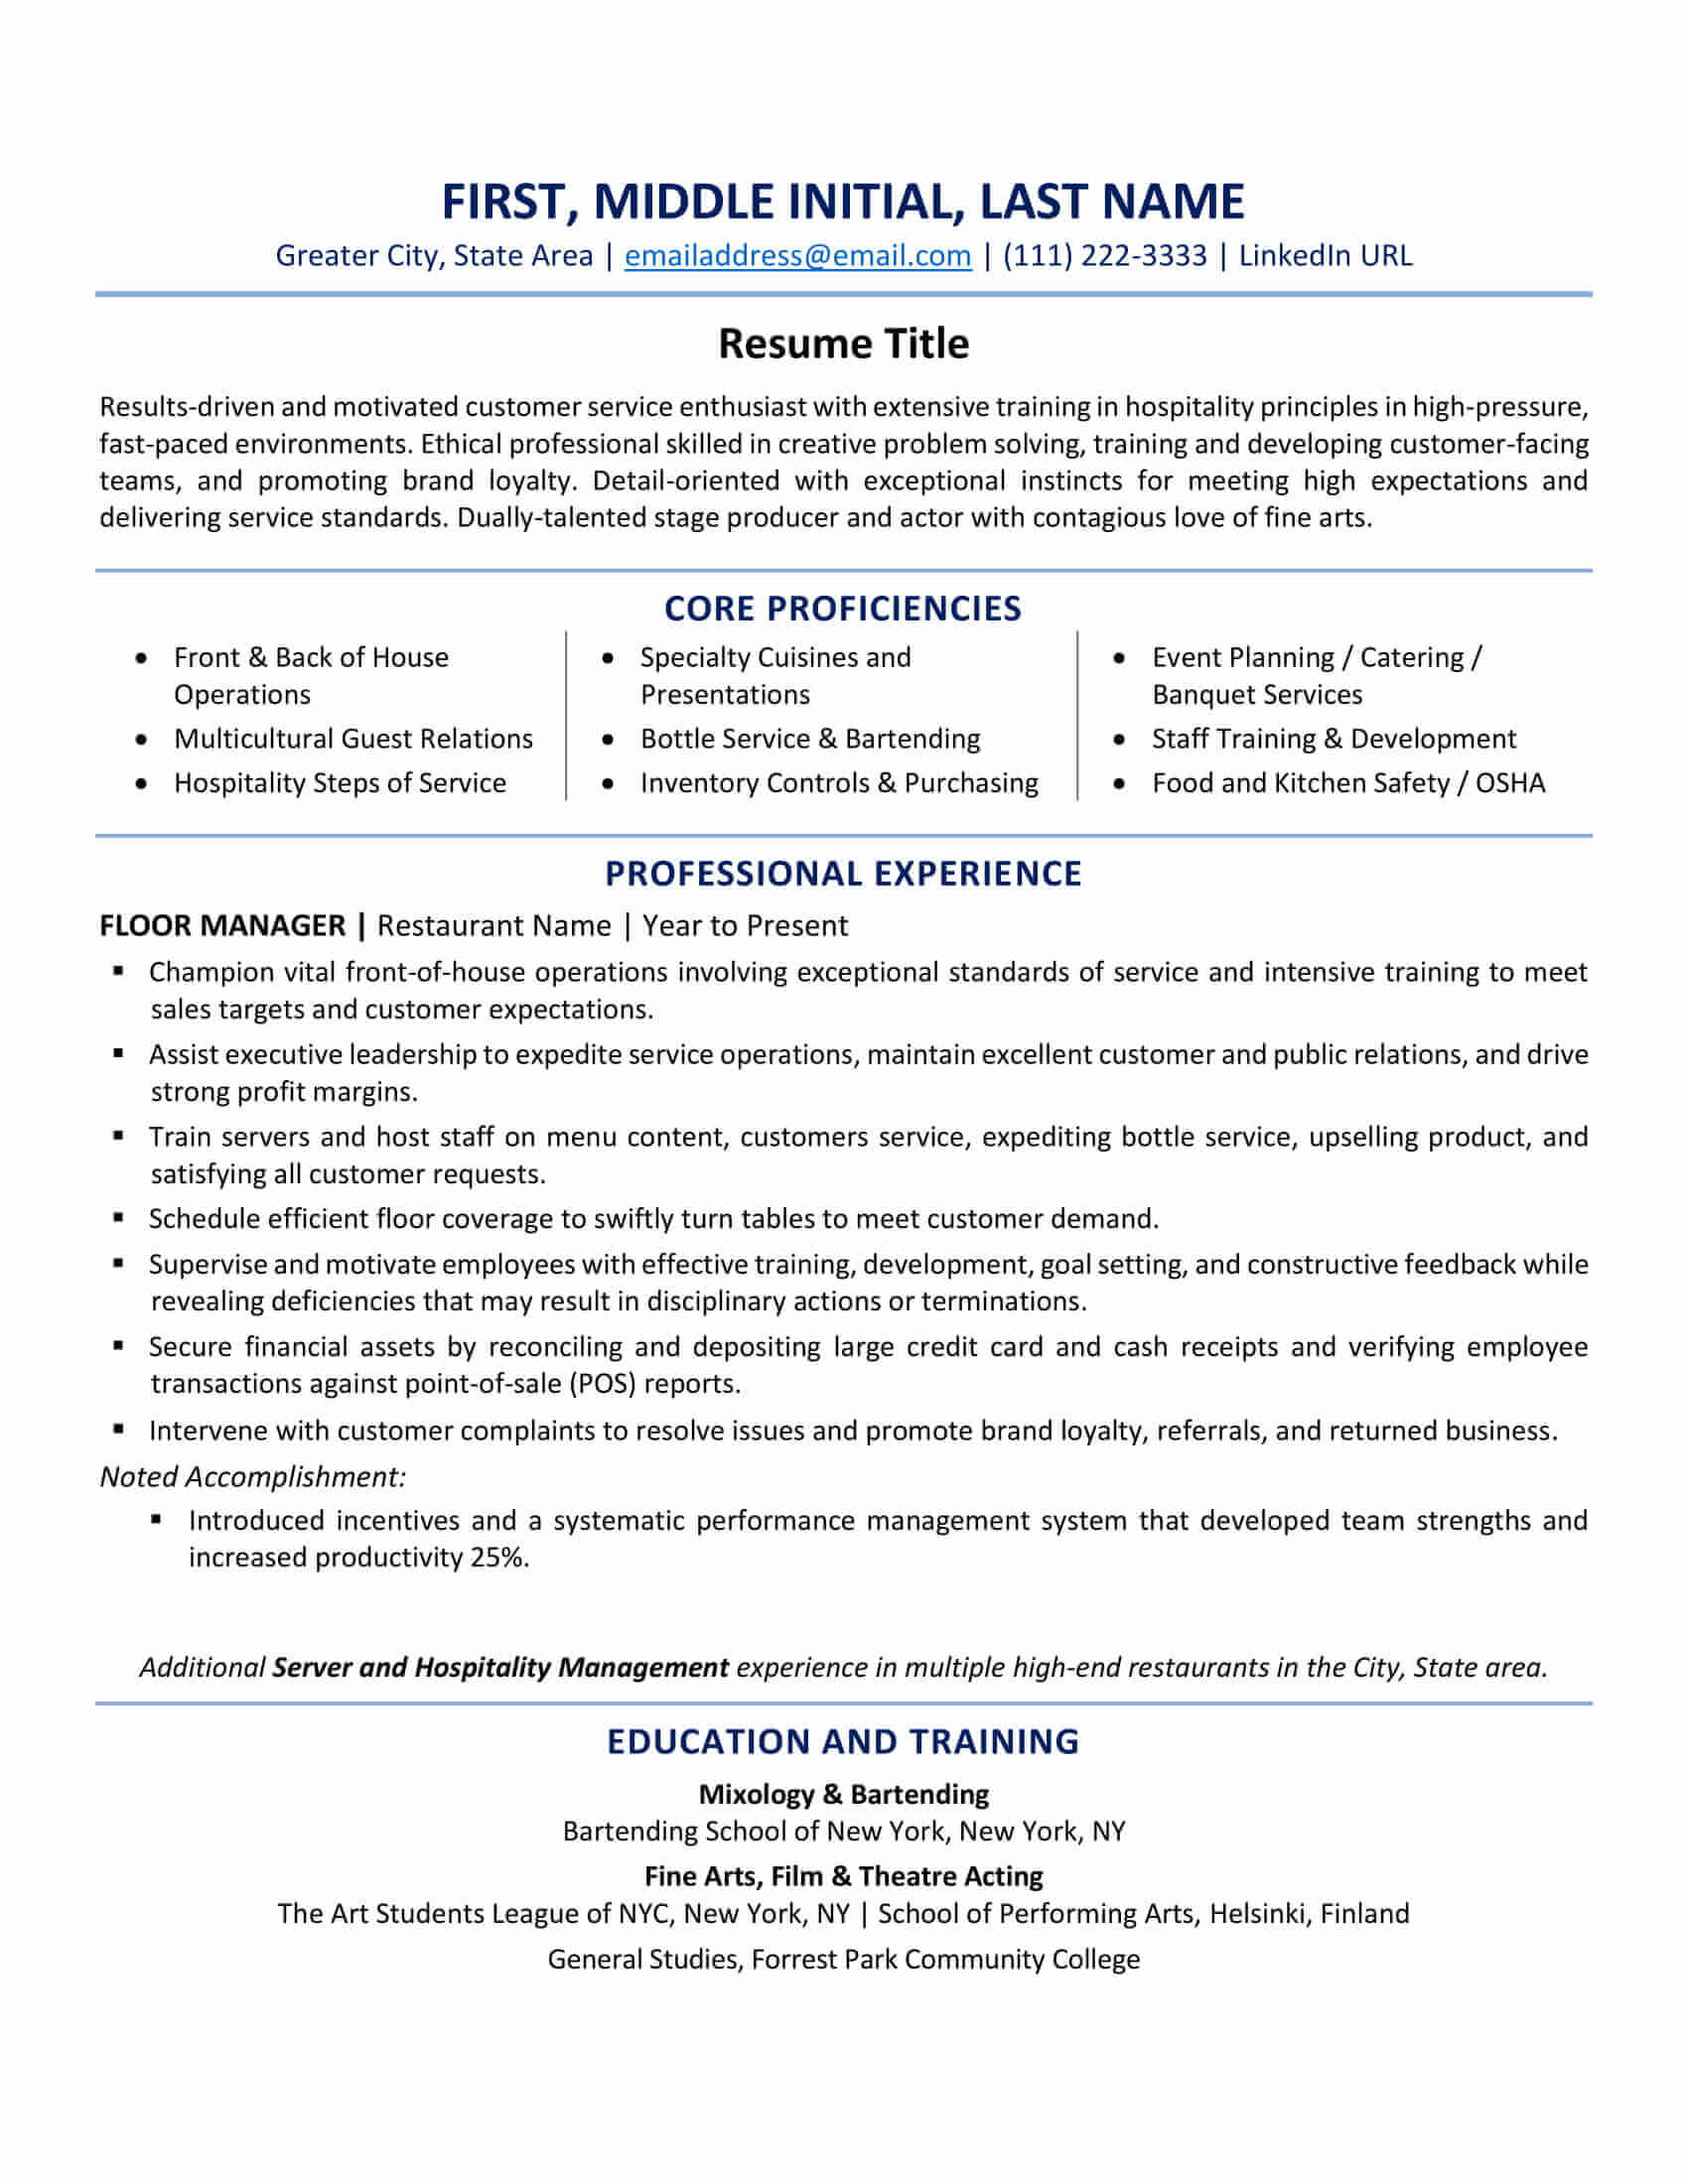 ats resume test free checker formatting examples best format for when moving to the us Resume Best Resume Format For Ats